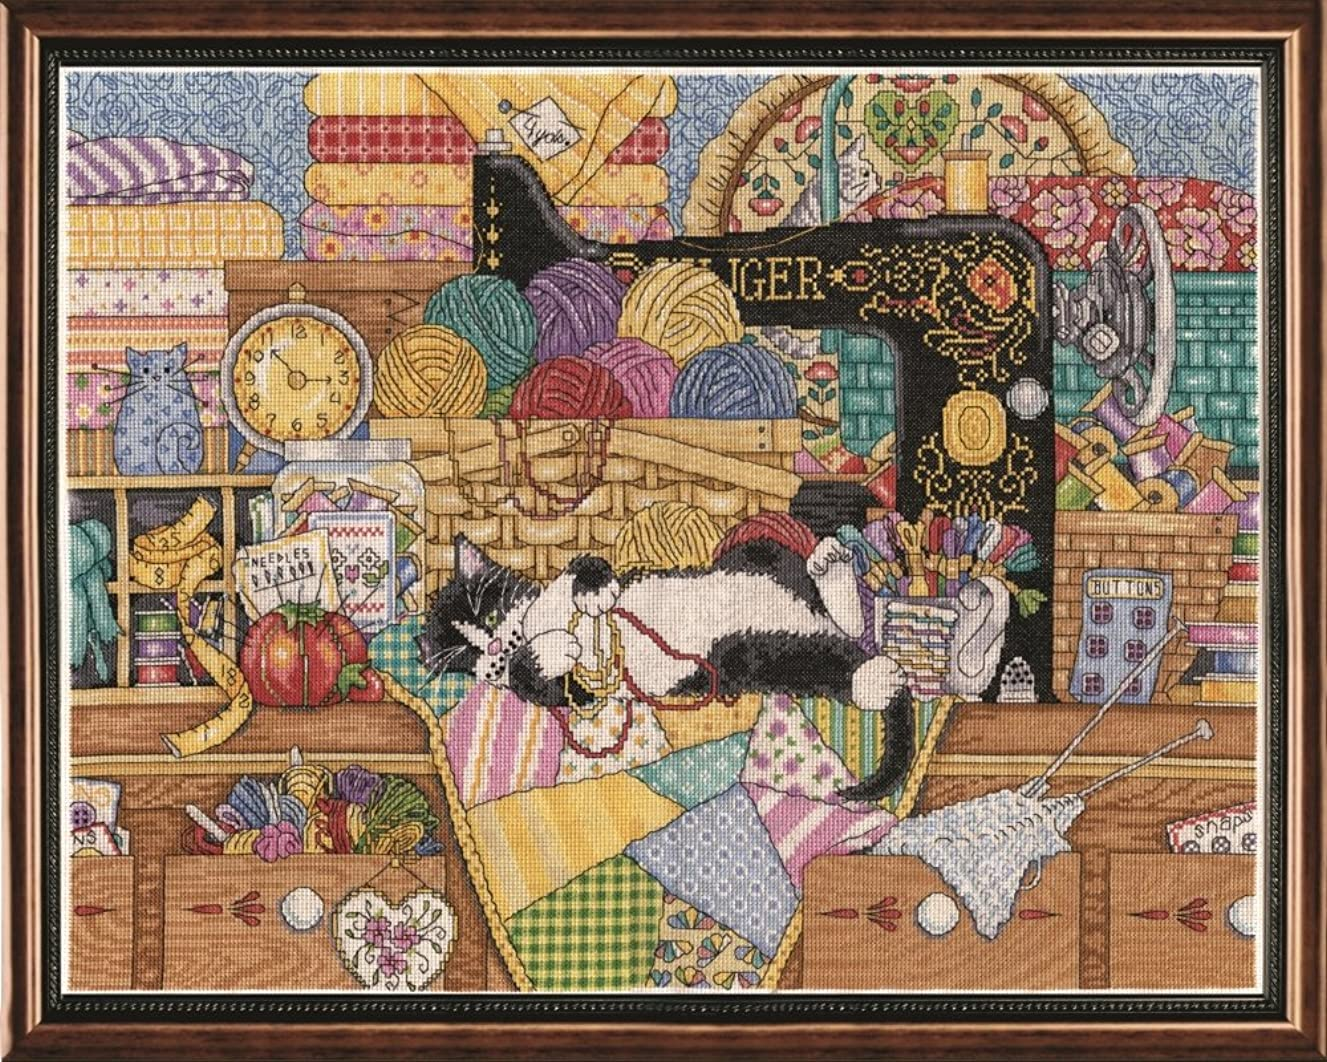 Tobin 2863 14 Count Kitty Sewing Lesson Counted Cross Stitch Kit, 16